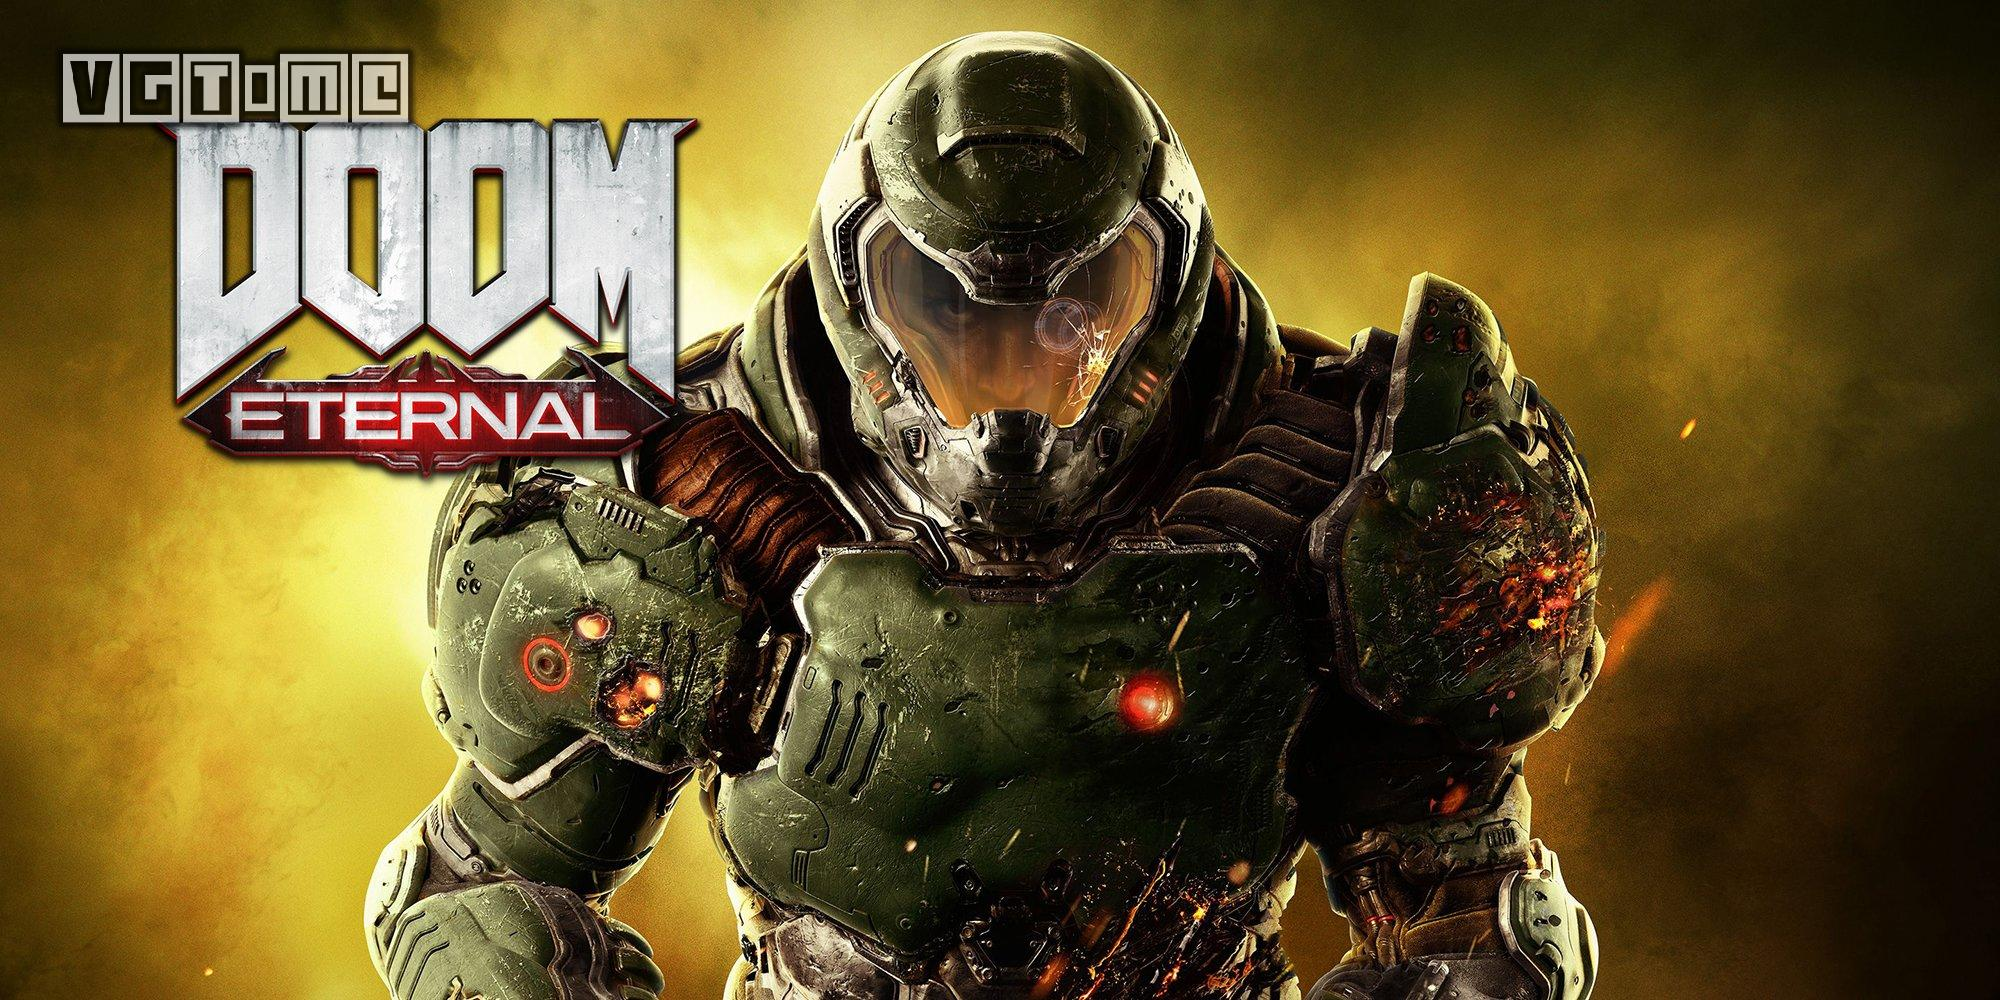 Steam's weekly sales list: doom forever tops